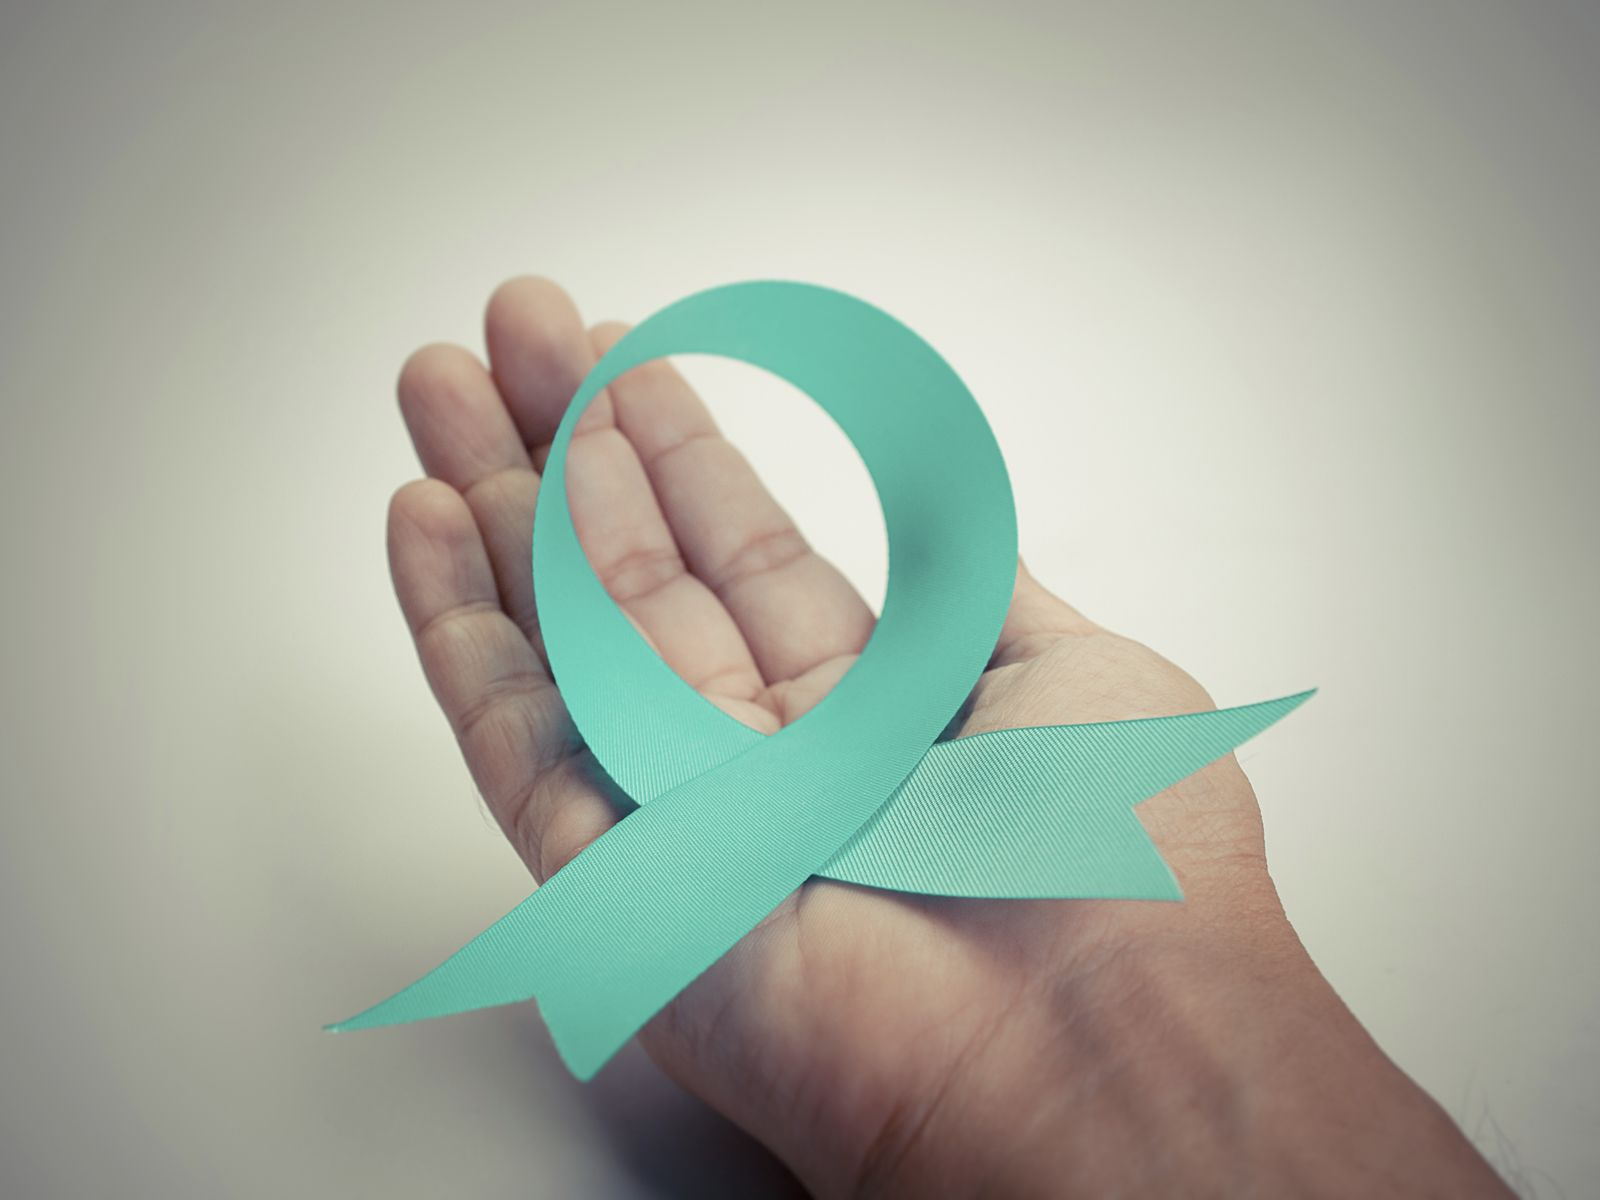 7 Things To Know About Ovarian Cancer